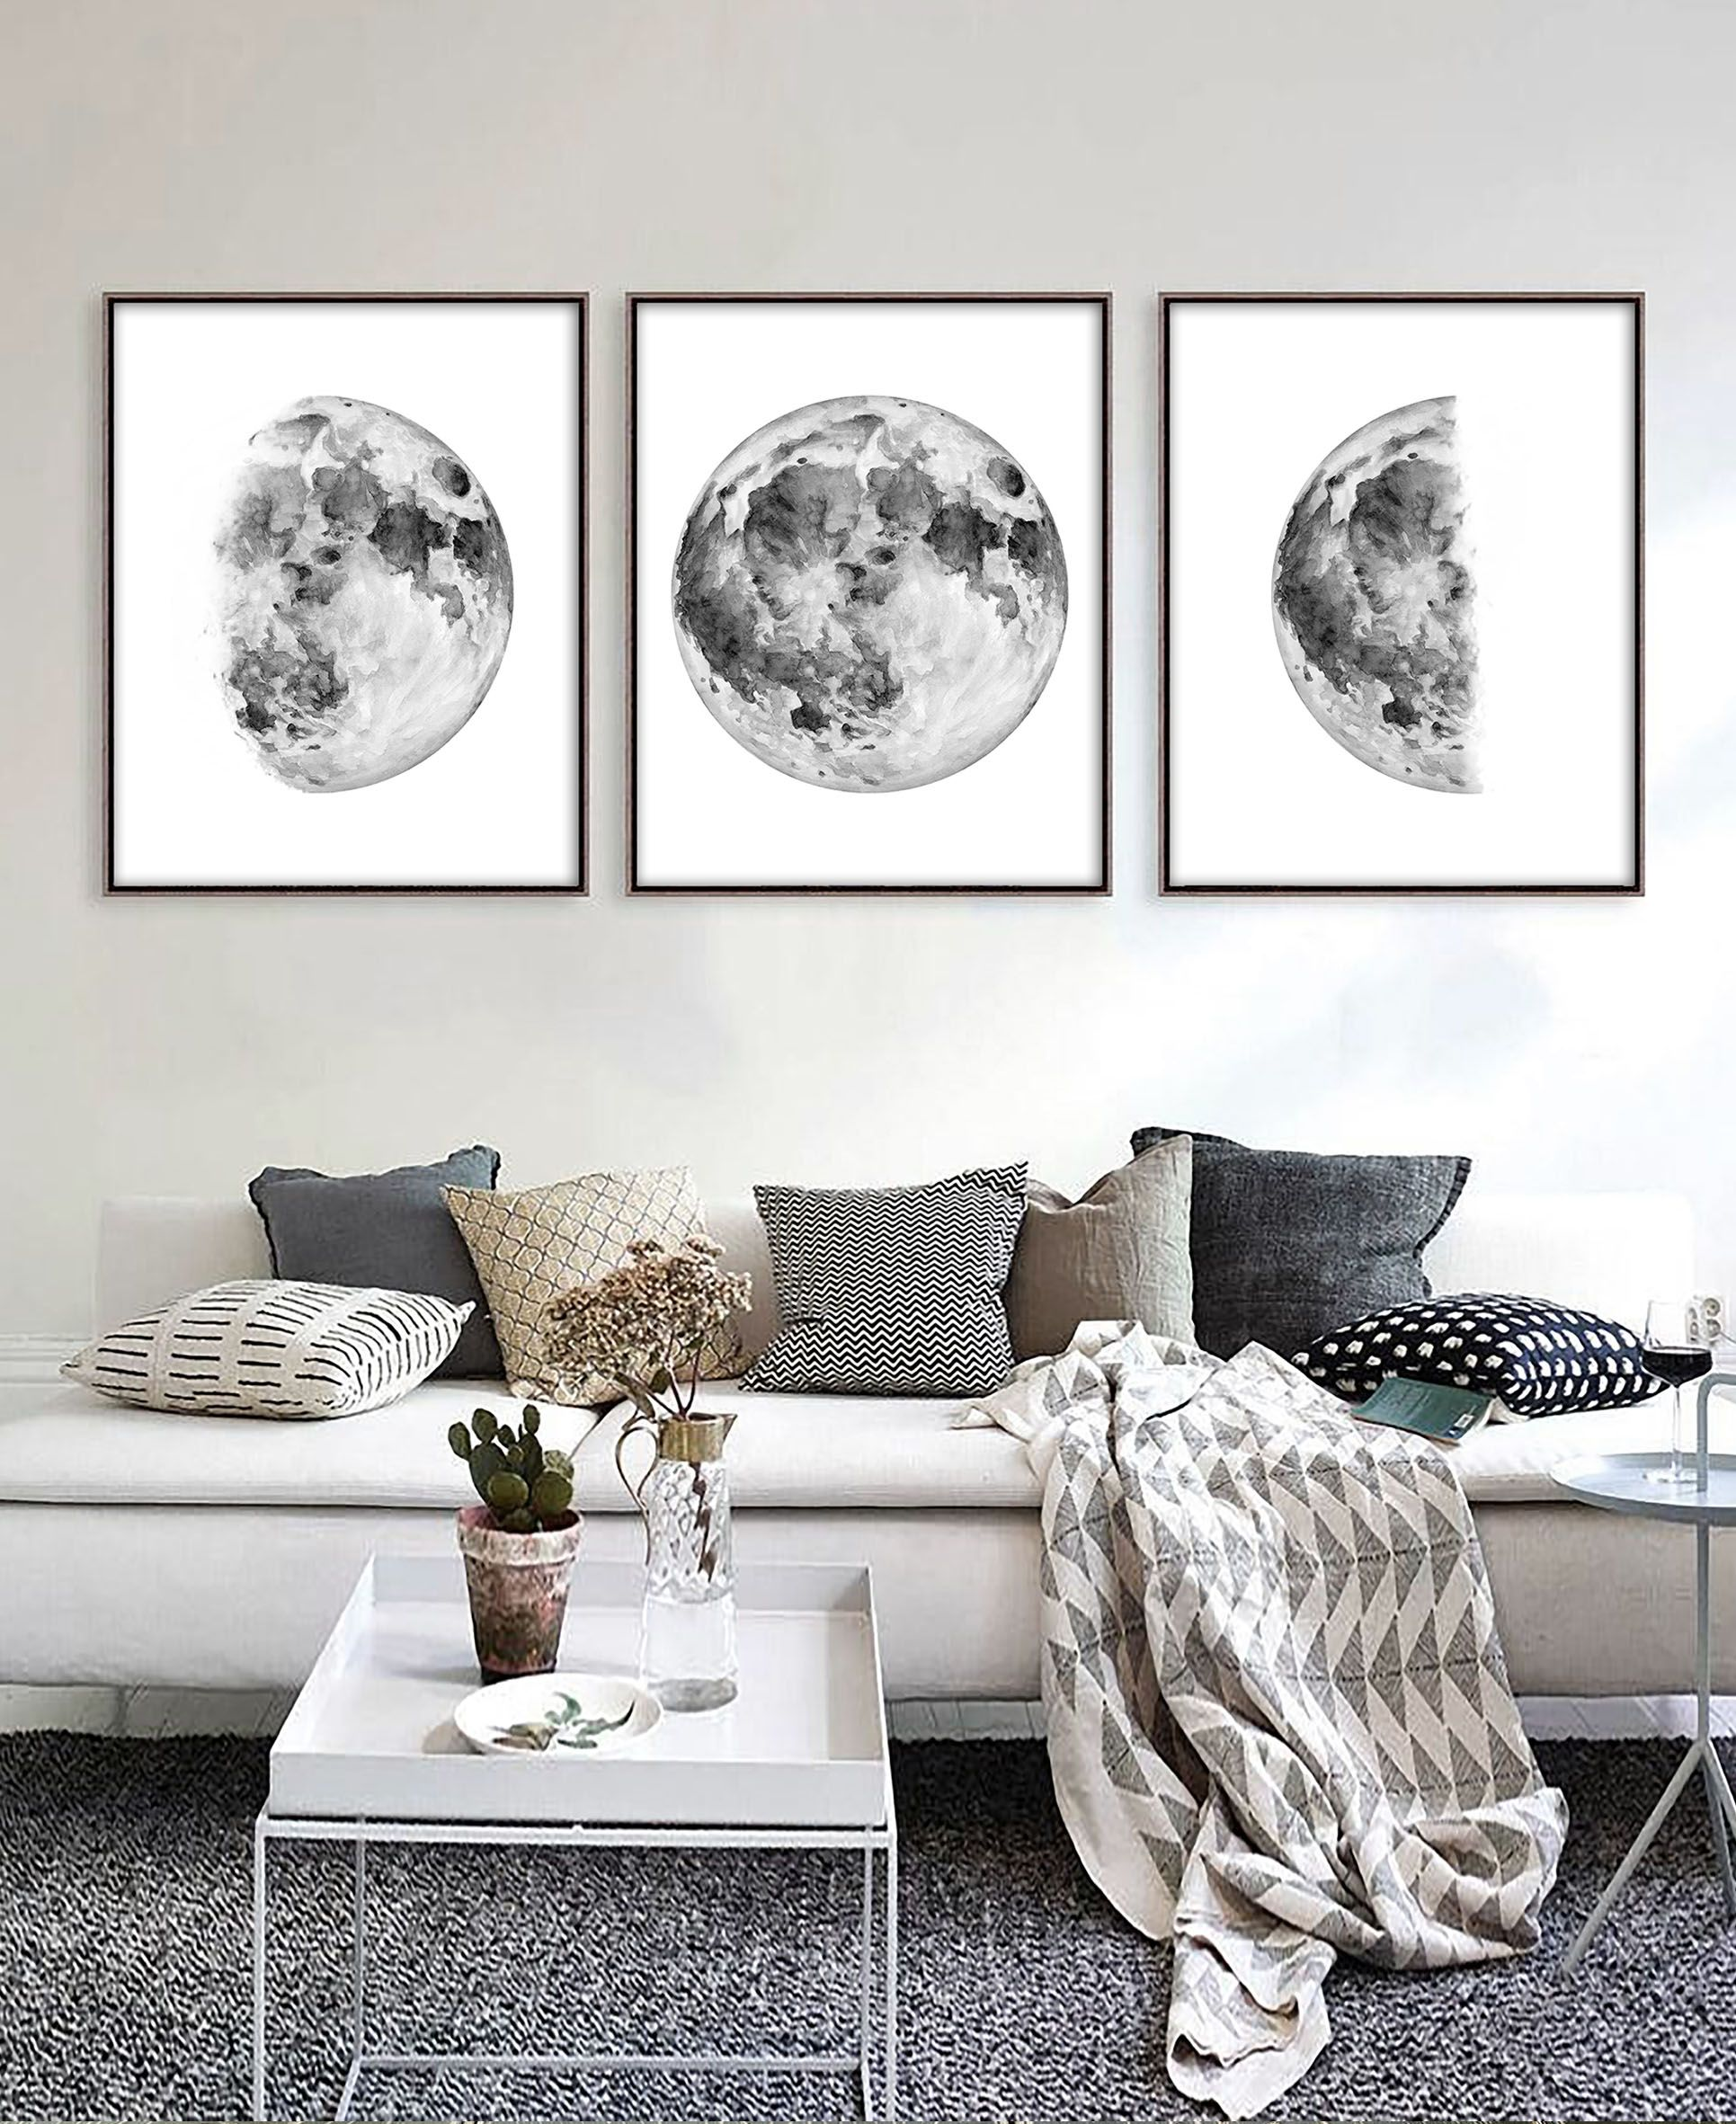 Wall Art Sets For Living Room Indian False Ceiling Designs Printable Set Of 3 Moon Phases Print Downloadable Prints Decor Bedroom B W